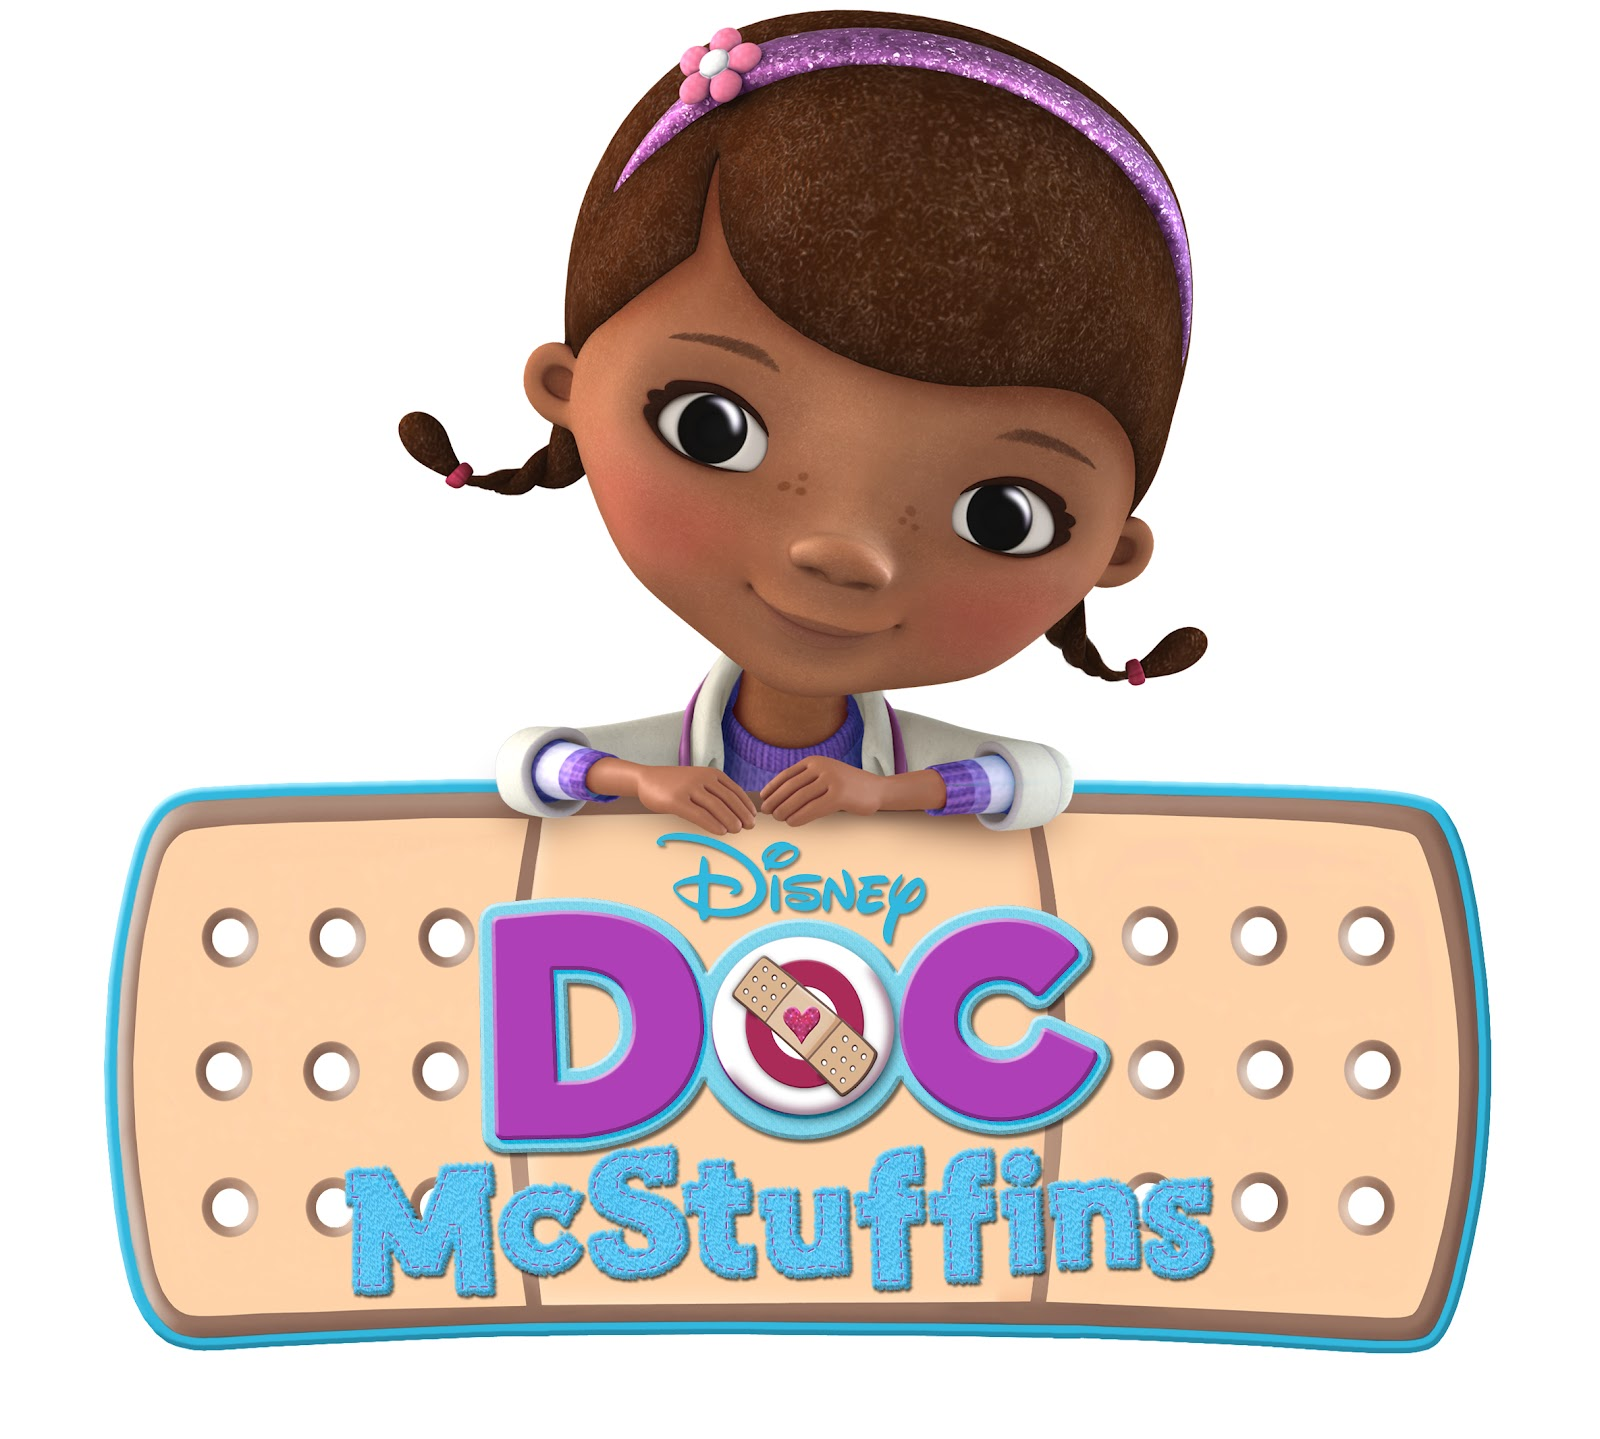 Fun printables for kids featuring Doc McStuffins from Disney!